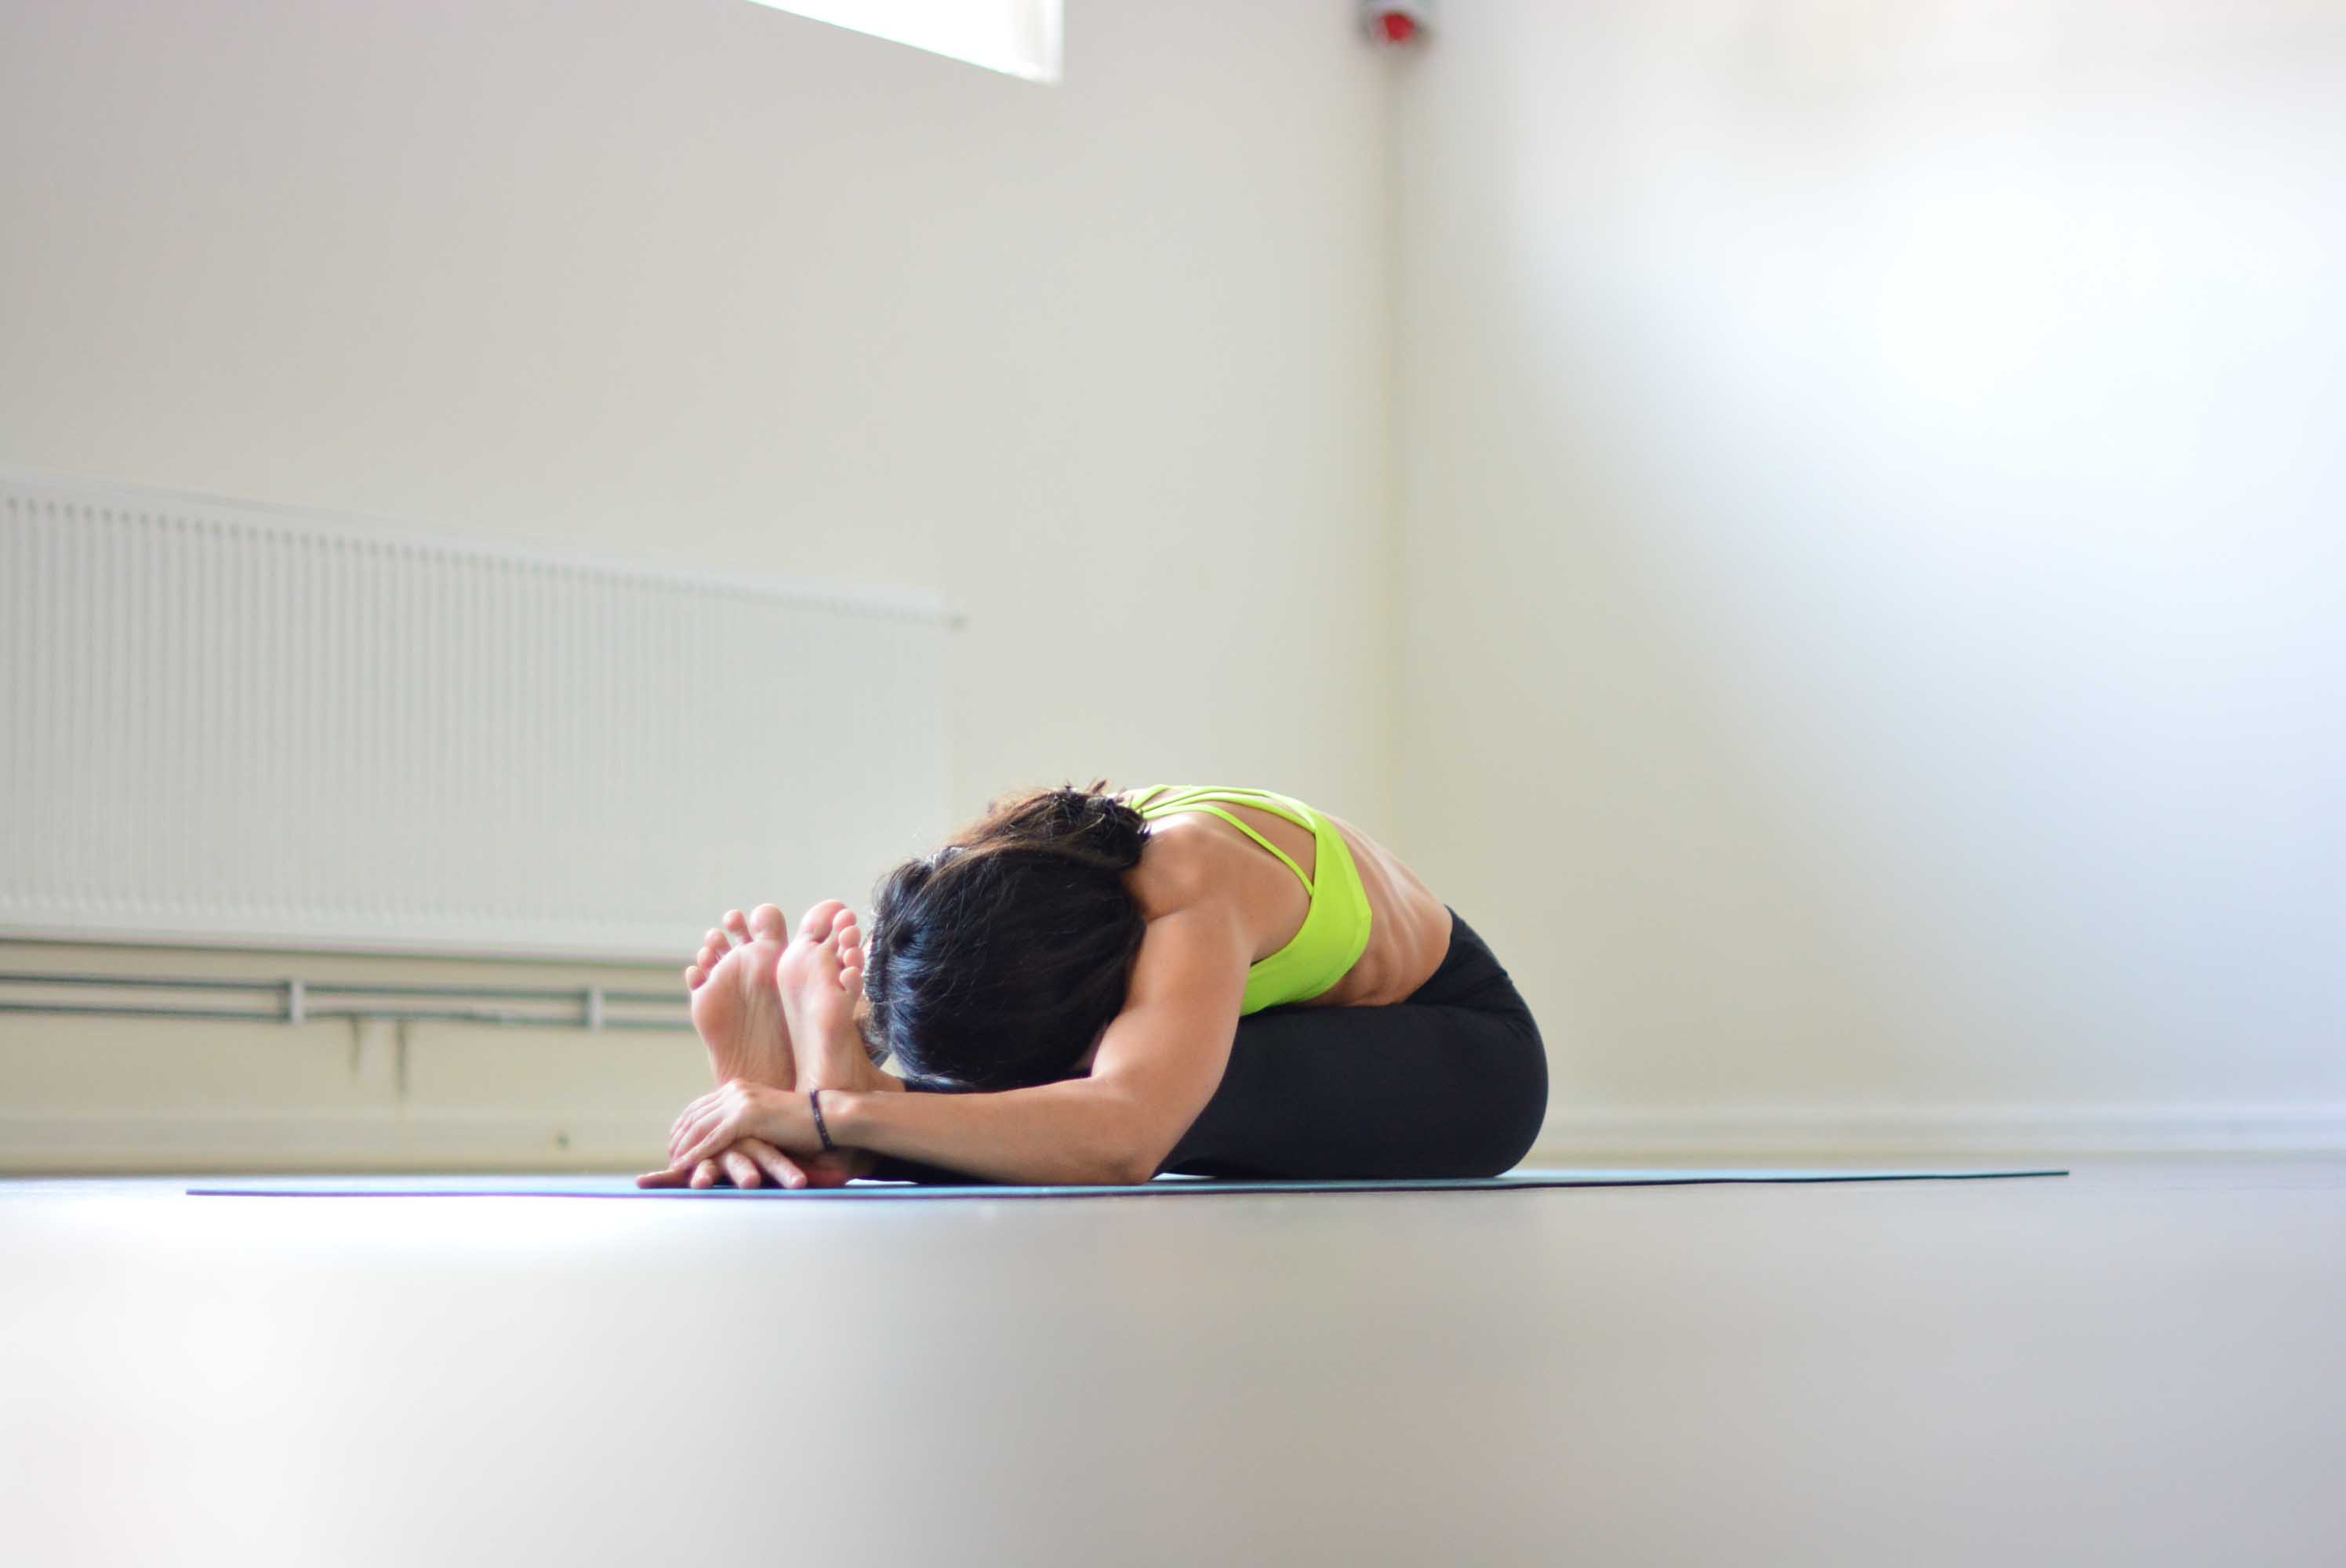 Paschimottanasana - Seated forward bend pose